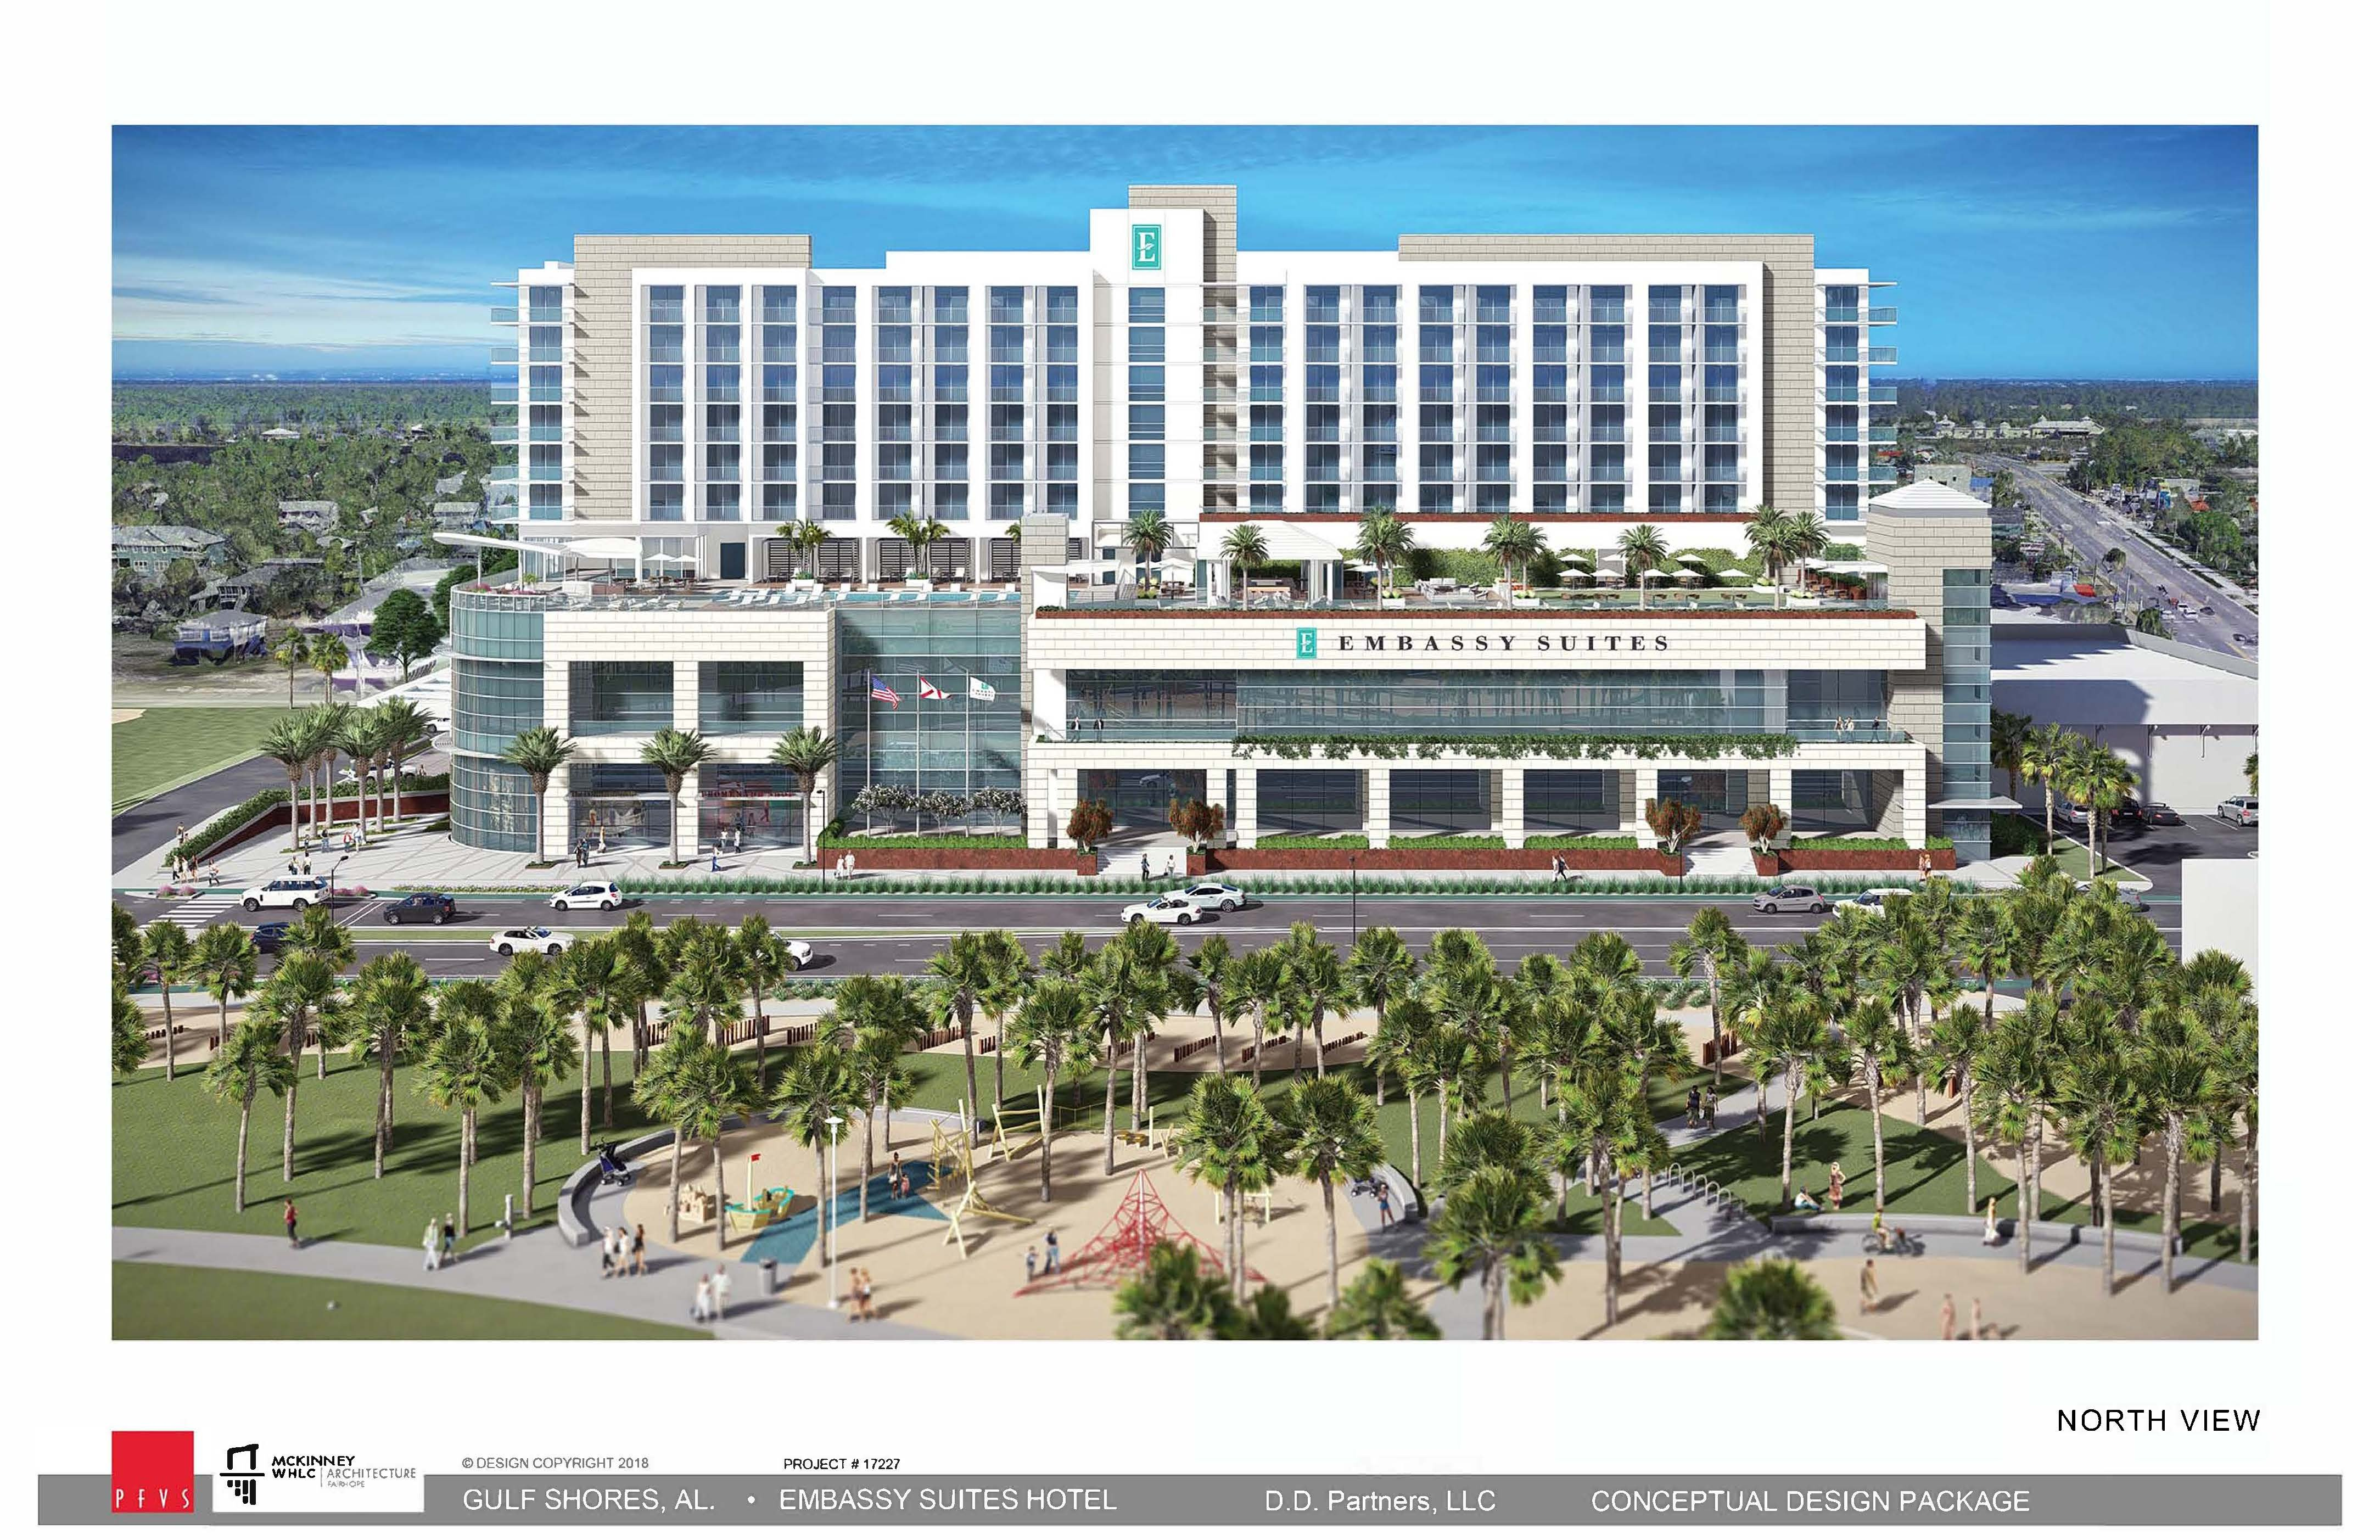 Embassy Suites hotel to anchor $85 million mixed-use development in Gulf Shores. Photo: City of Gulf Shores